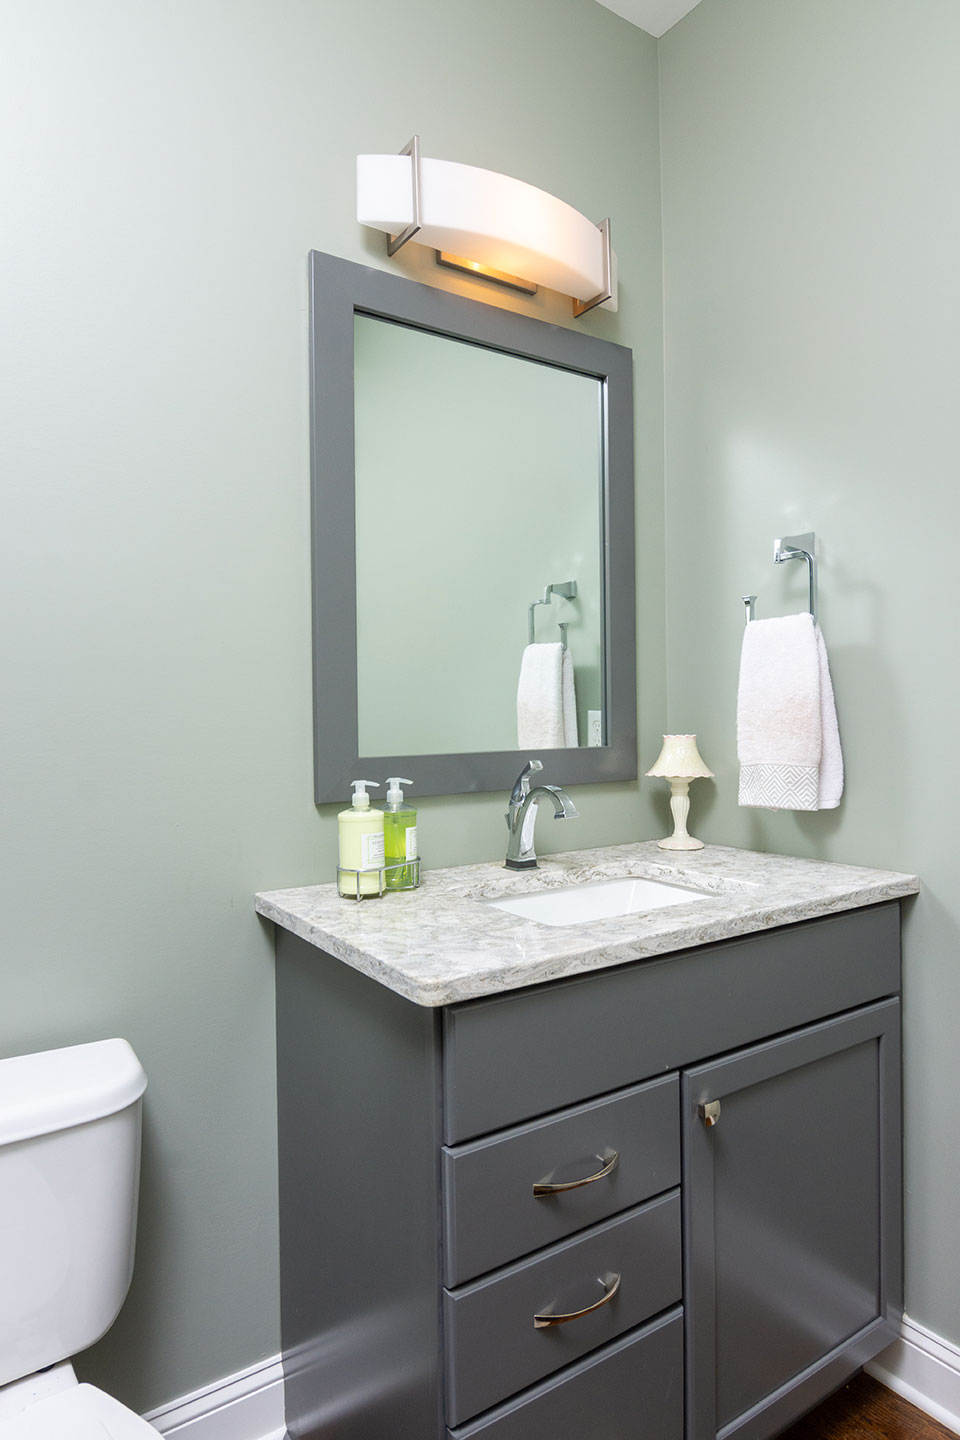 photo of bathroom sink with large mirror